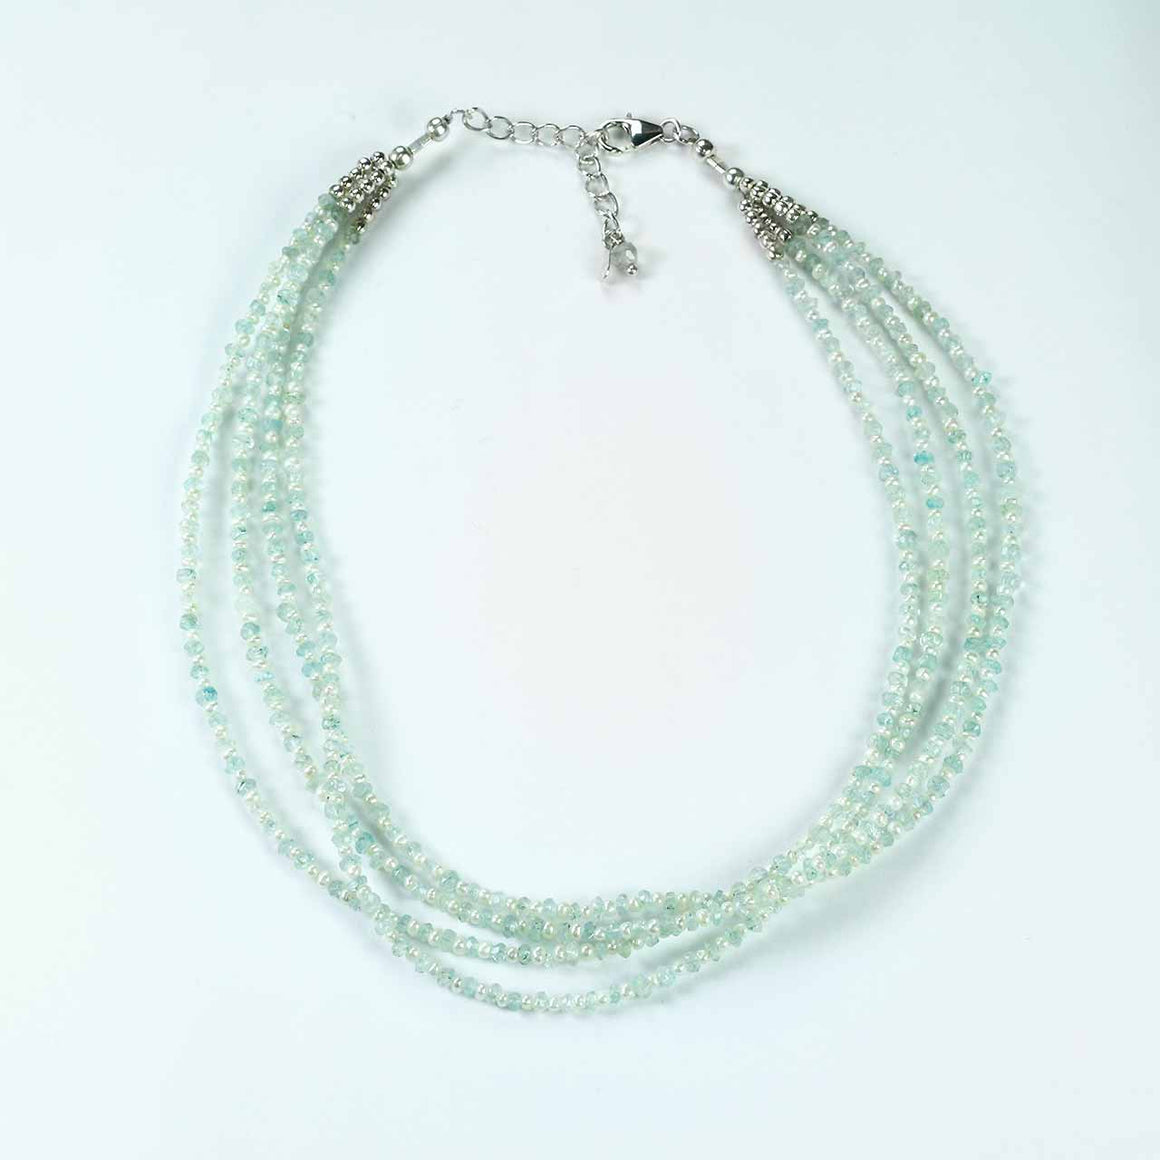 Aquamarine and Freshwater Pearl 3 Strand Necklace